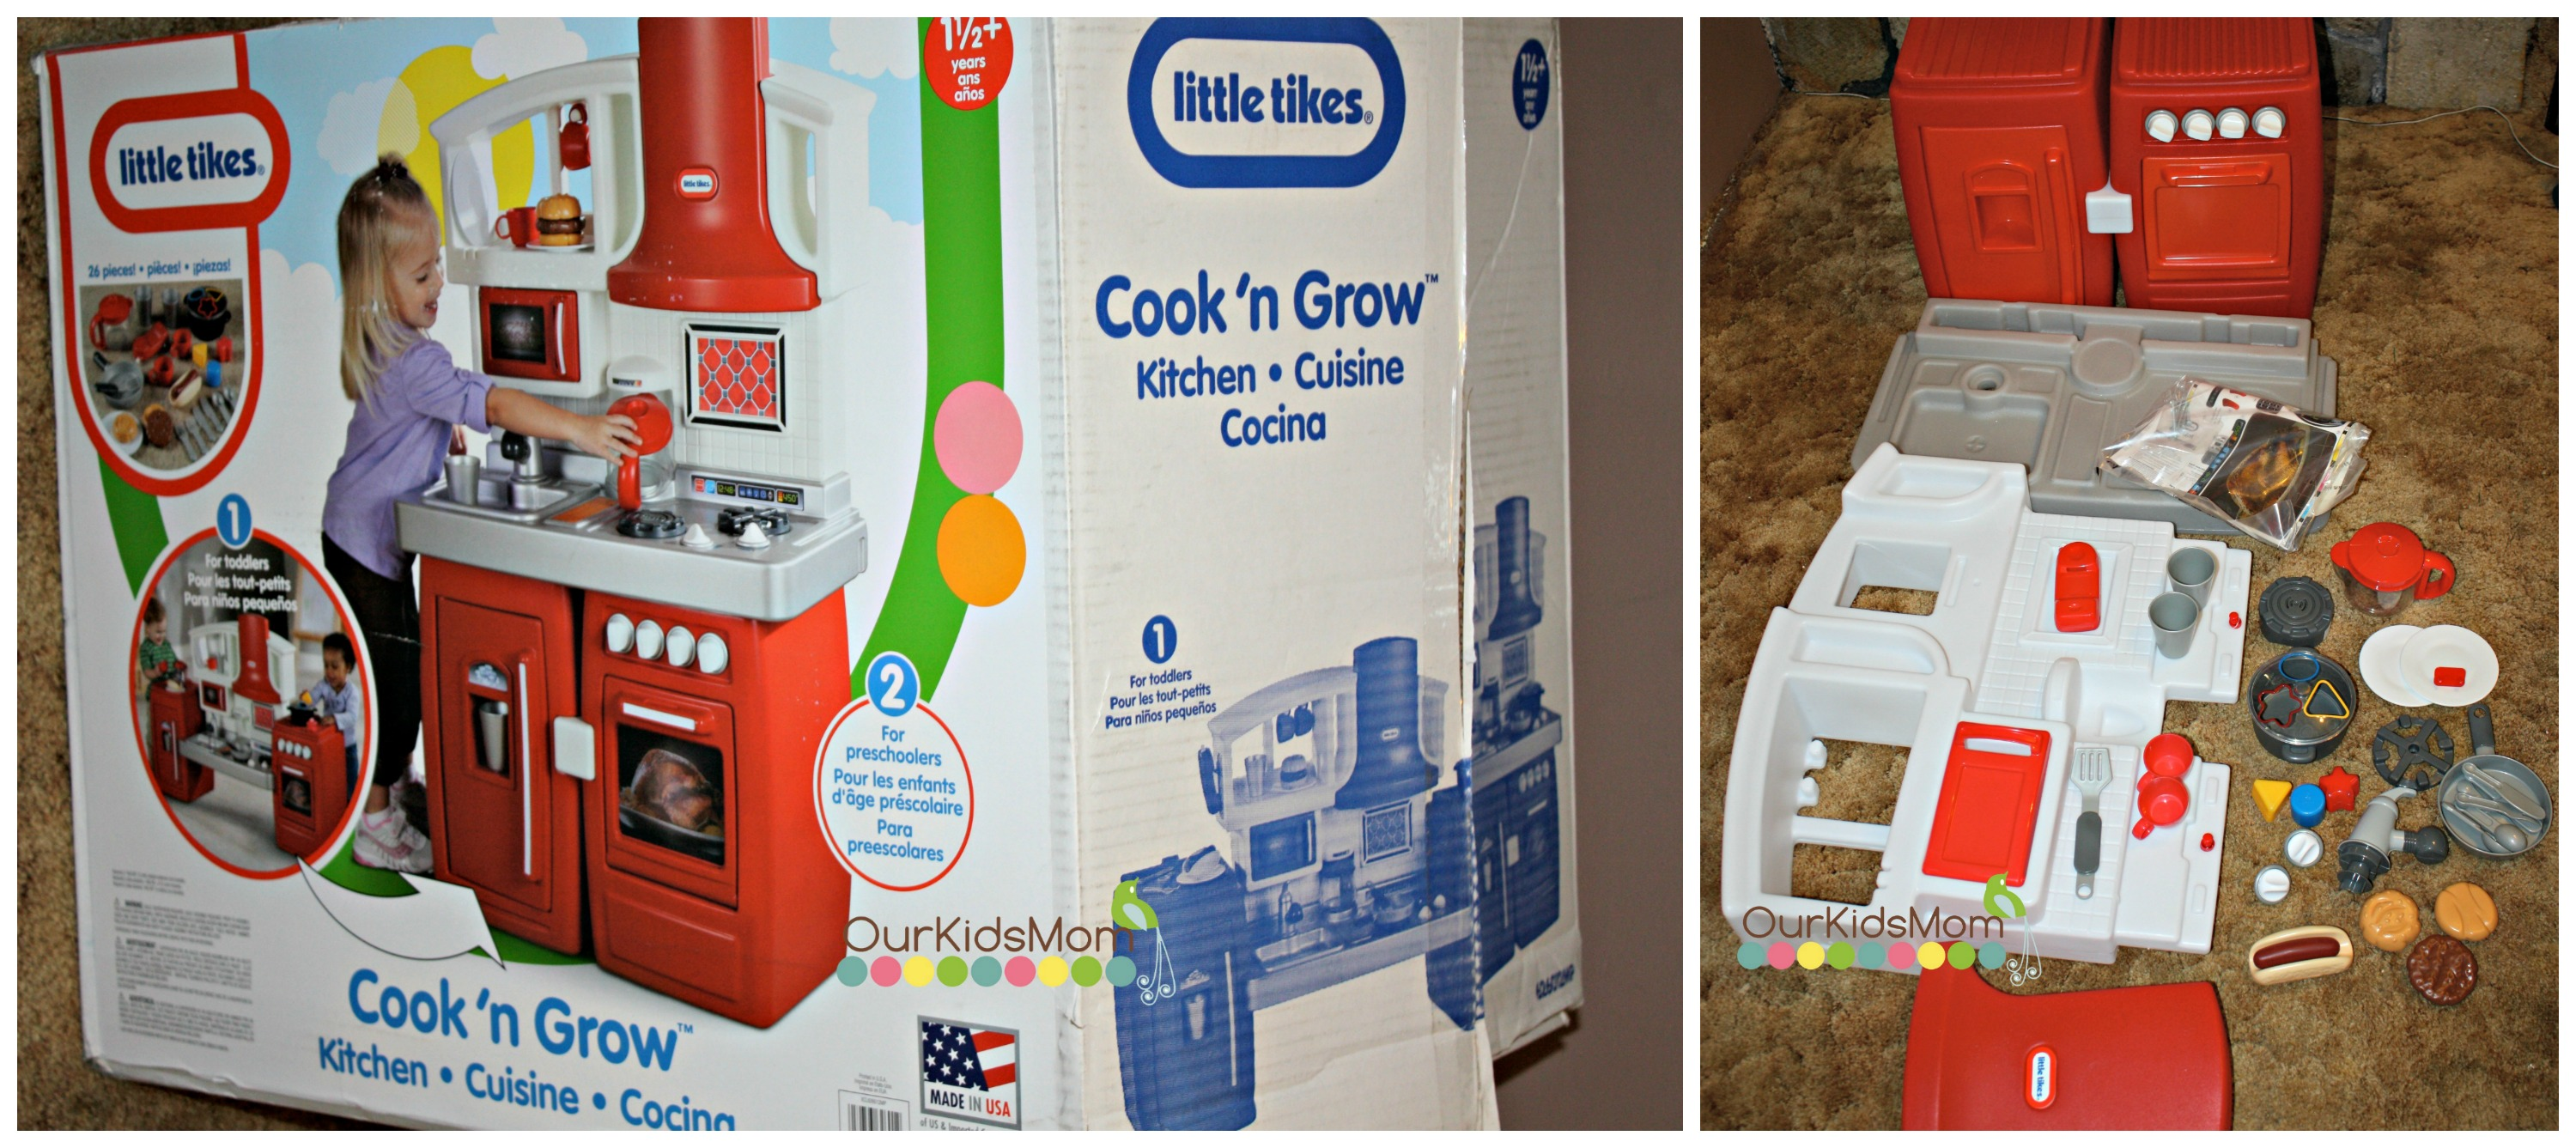 Little Tikes Sent Us This Amazing Kitchen To Review I Can Honestly Say Wish Had Gotten One For My First Child When He Was Small